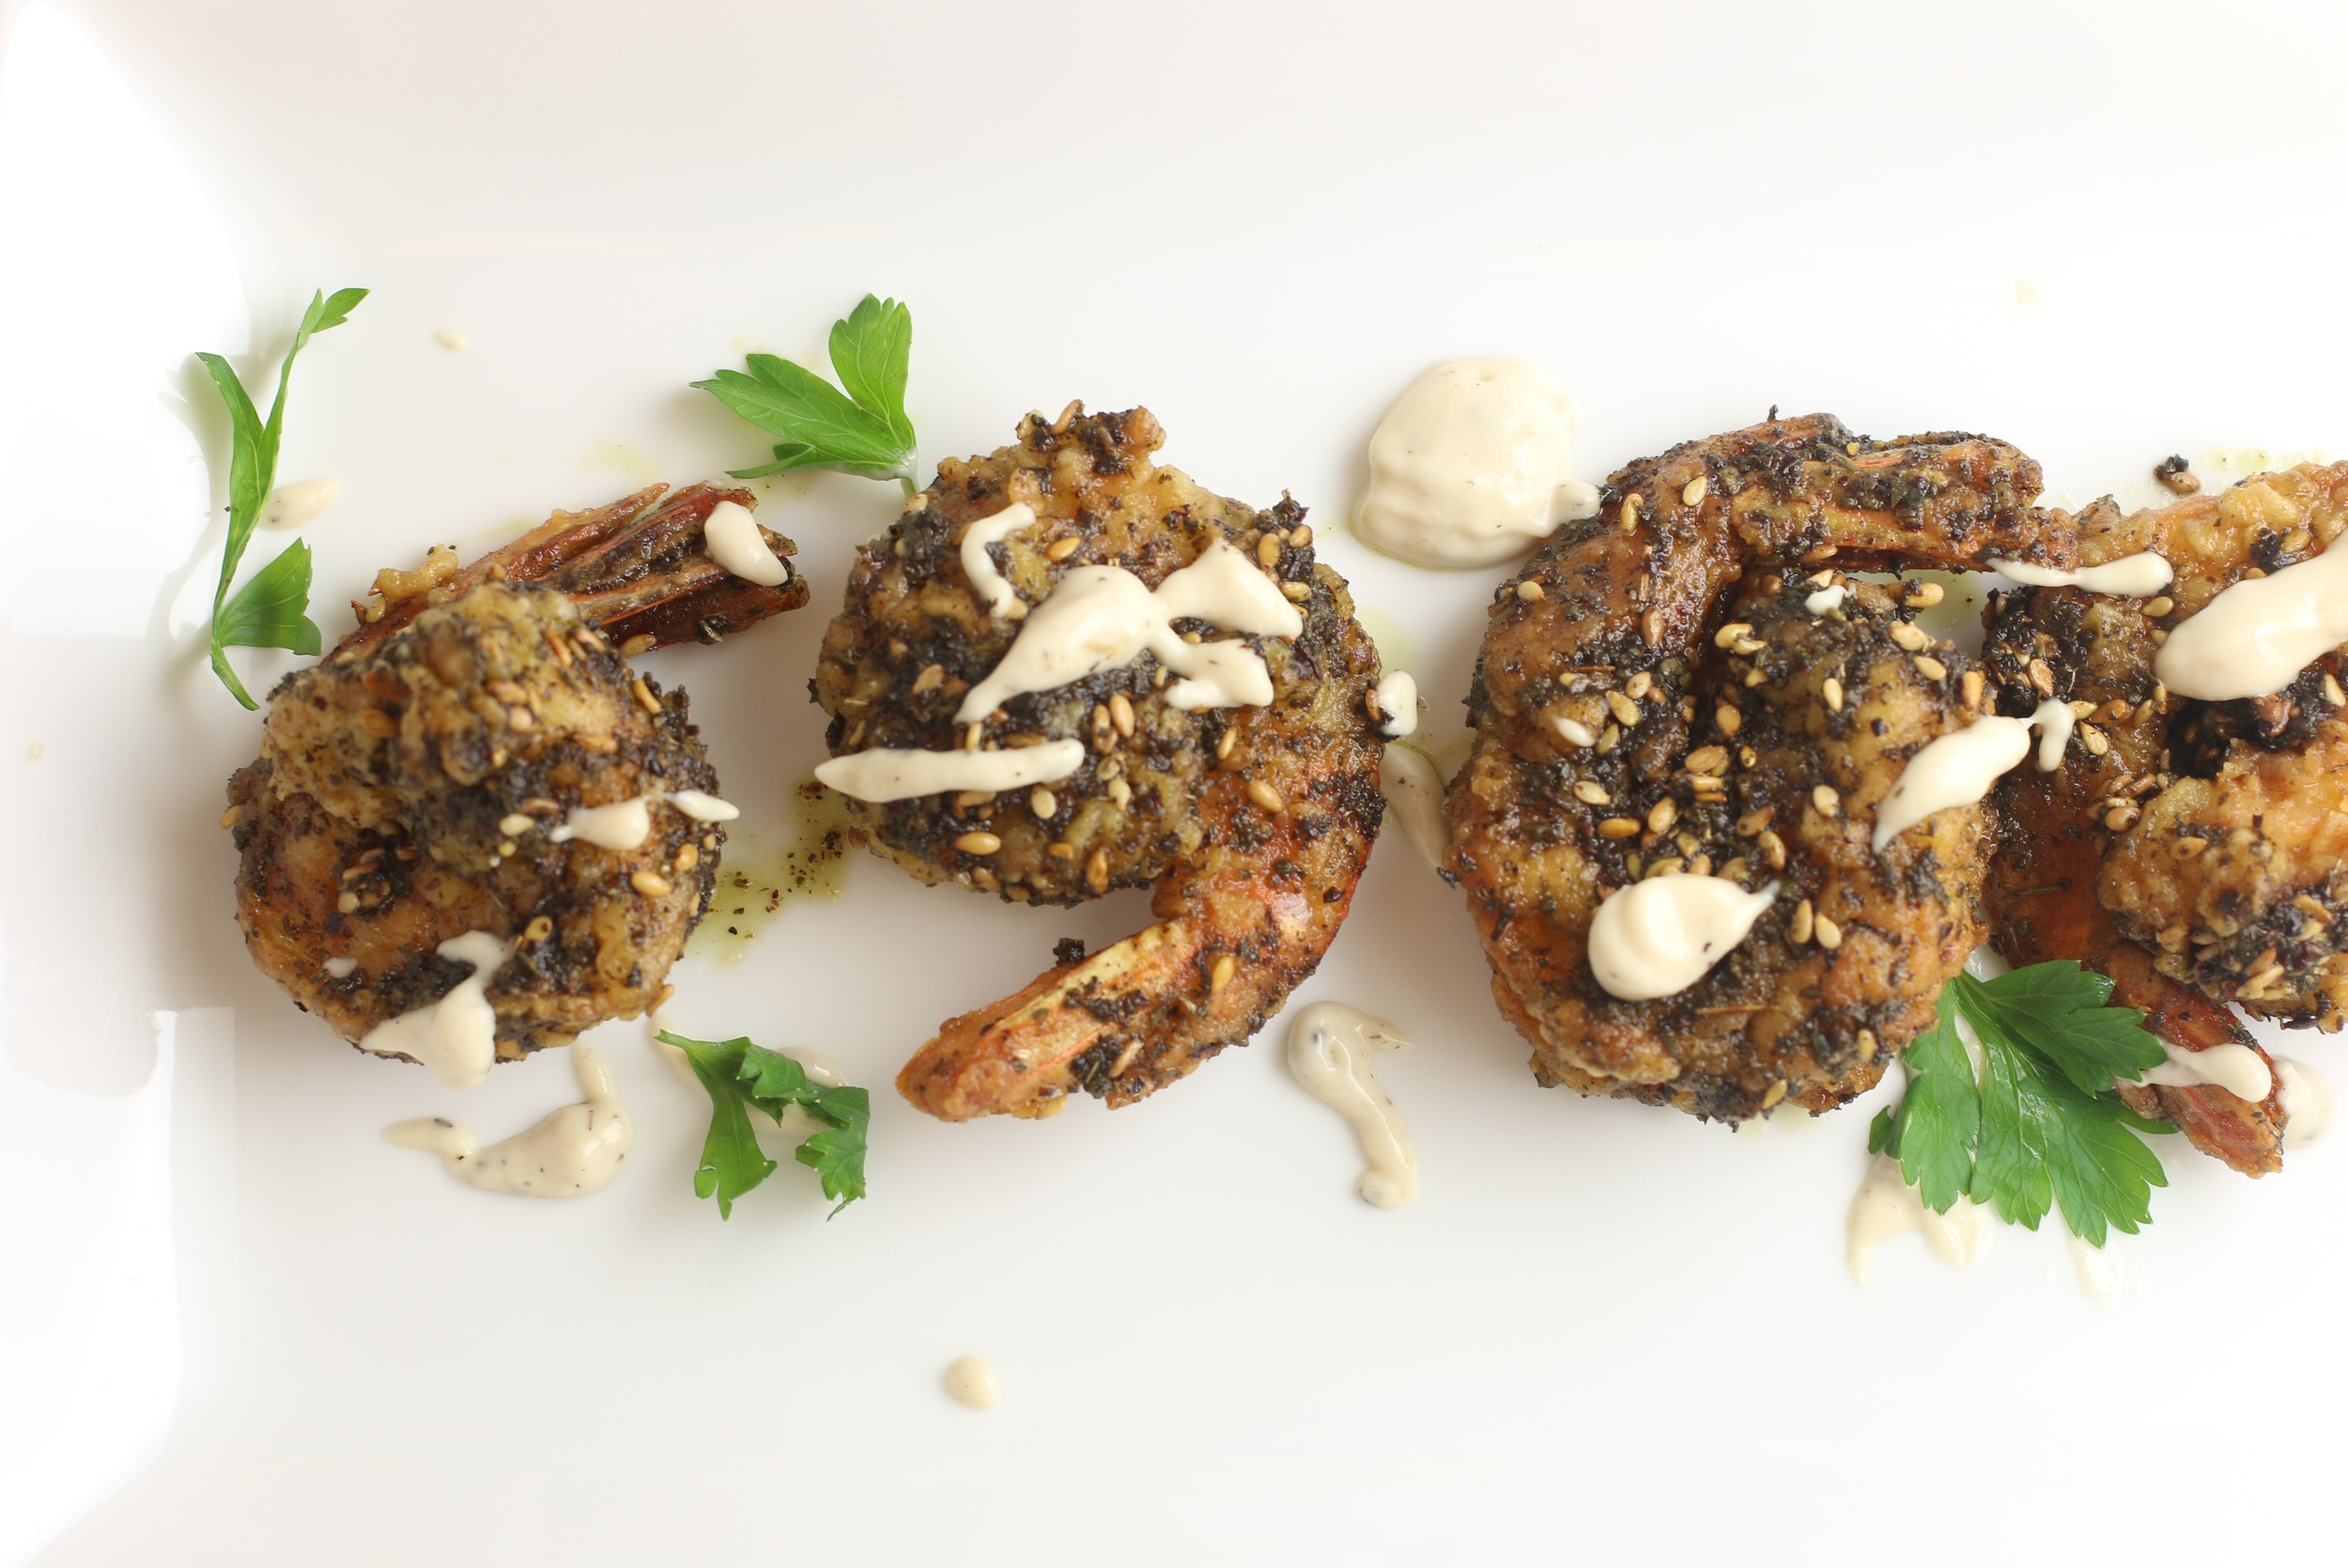 Zaatar crusted shrimp with lemon tahini_6935.jpg